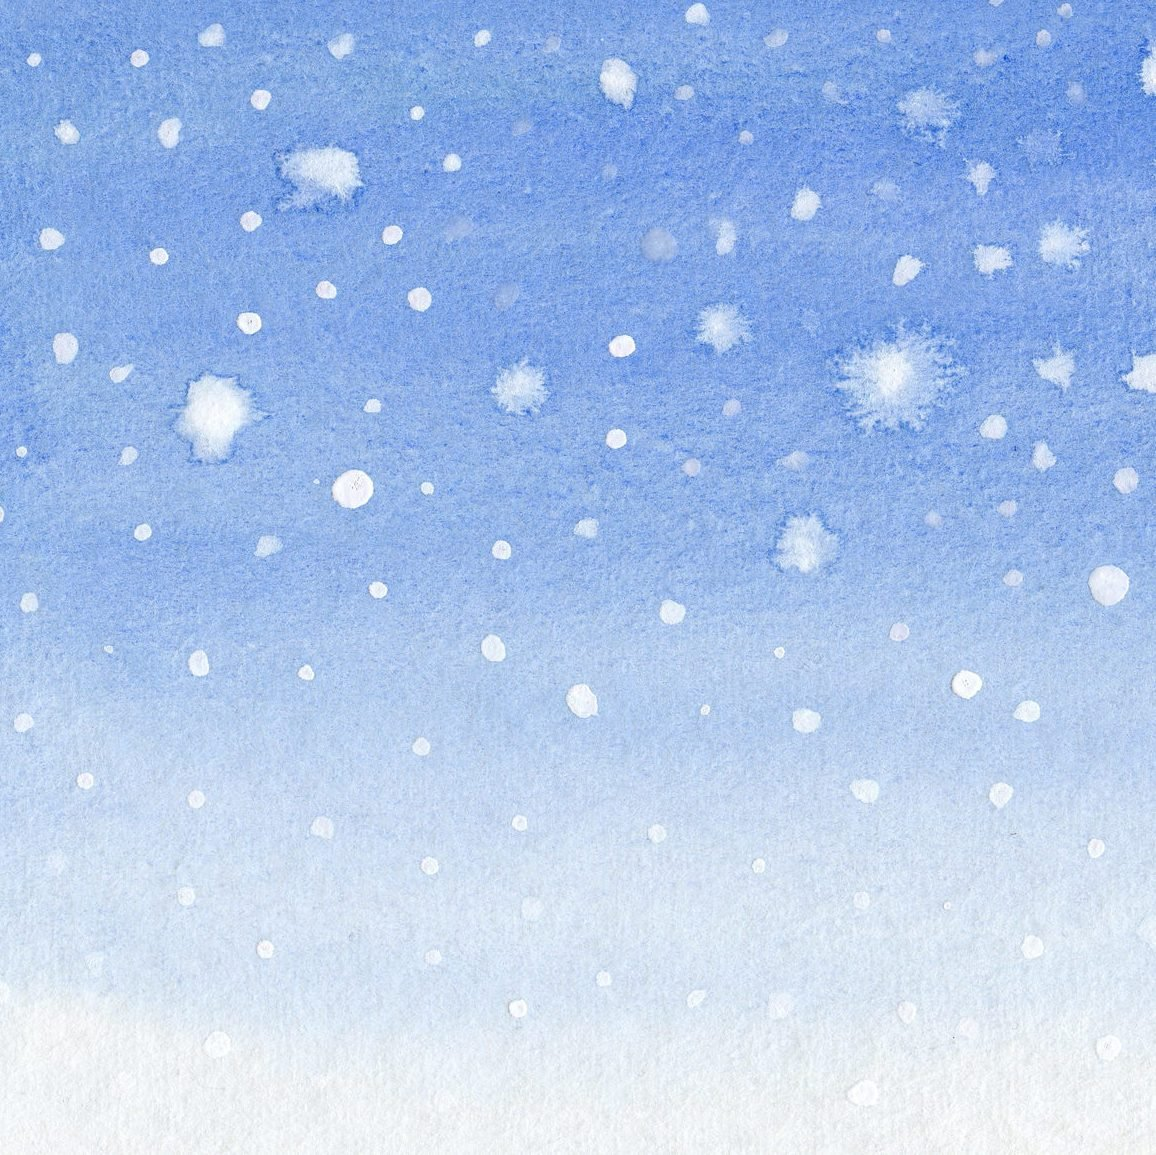 snow watercolor background with copy-space